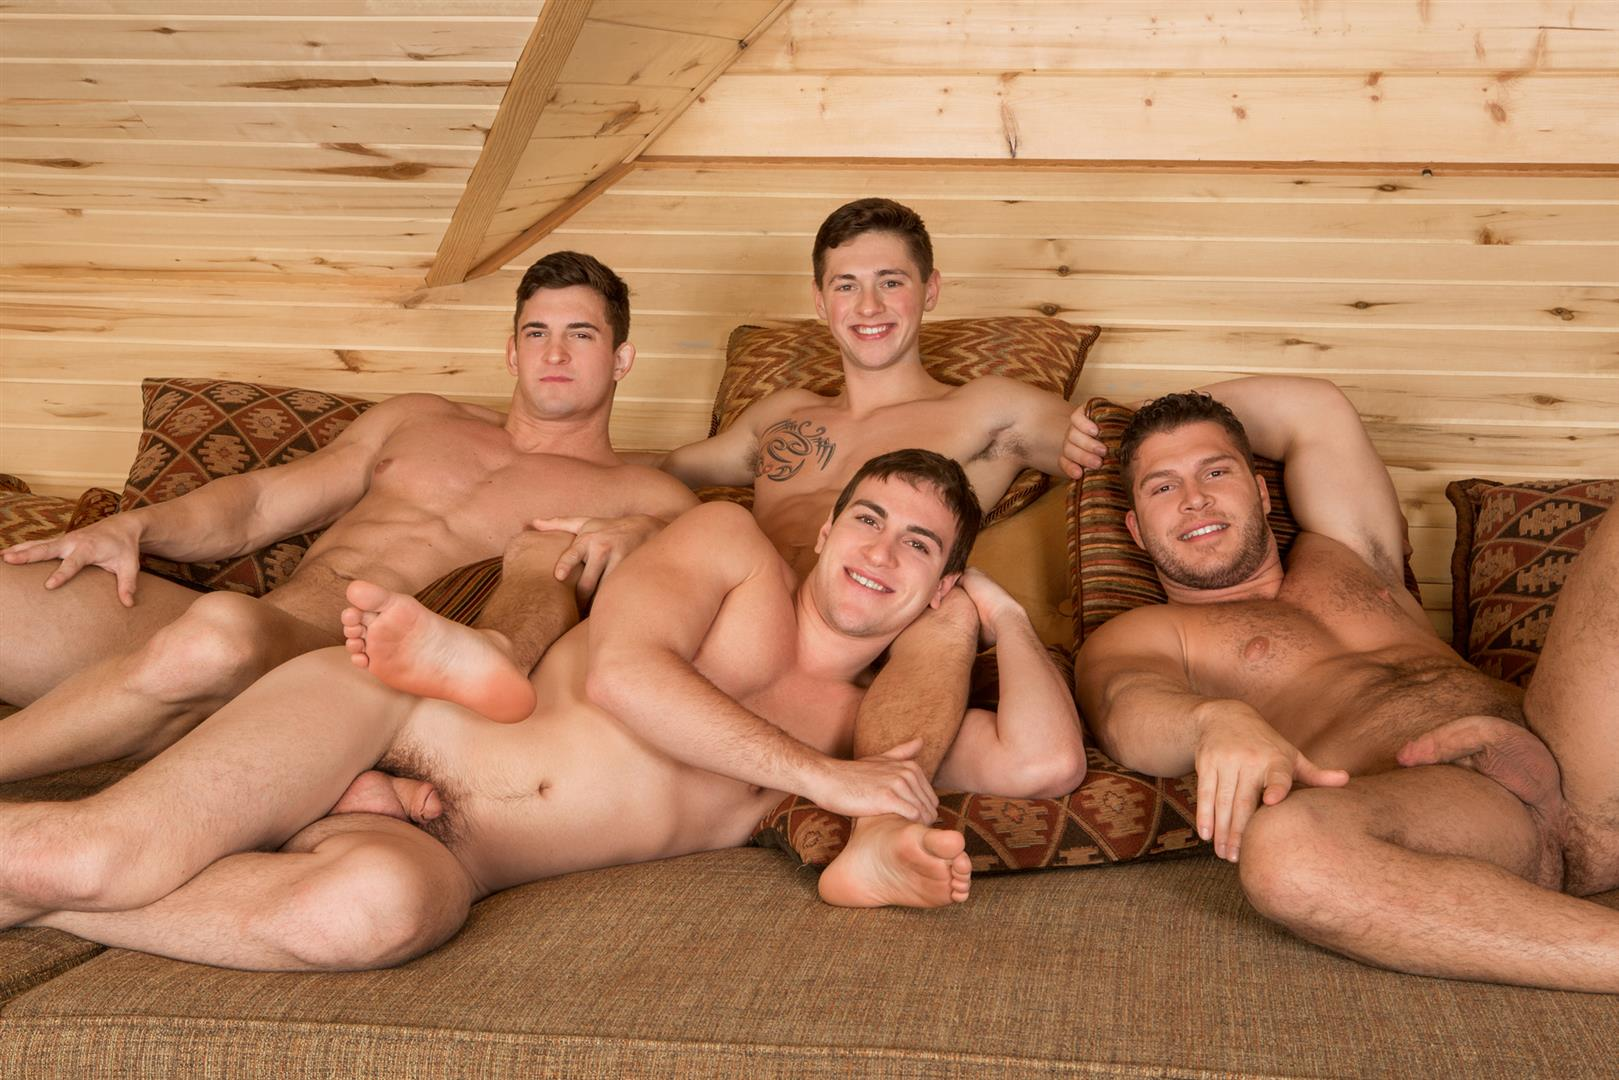 Sean Cody Winter Getaway Day 4 Big Dick Hunks Fucking Bareback Amateur Gay Porn 13 Sean Cody Takes The Boys On A 8 Day Bareback Winter Getaway